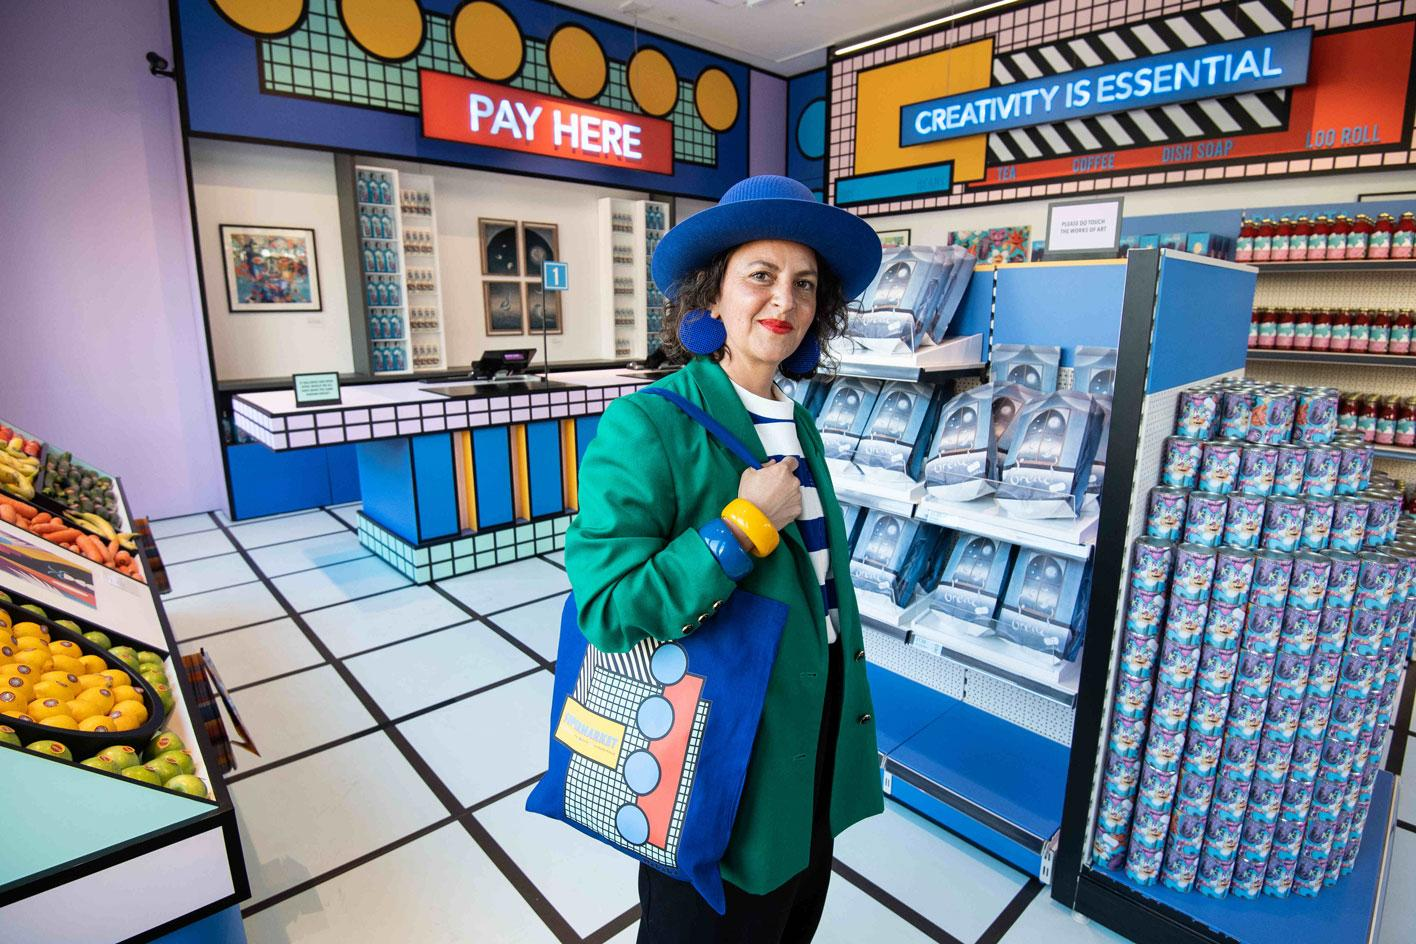 Camille Walala pictured inside 'Supermarket' at London's Design Museum